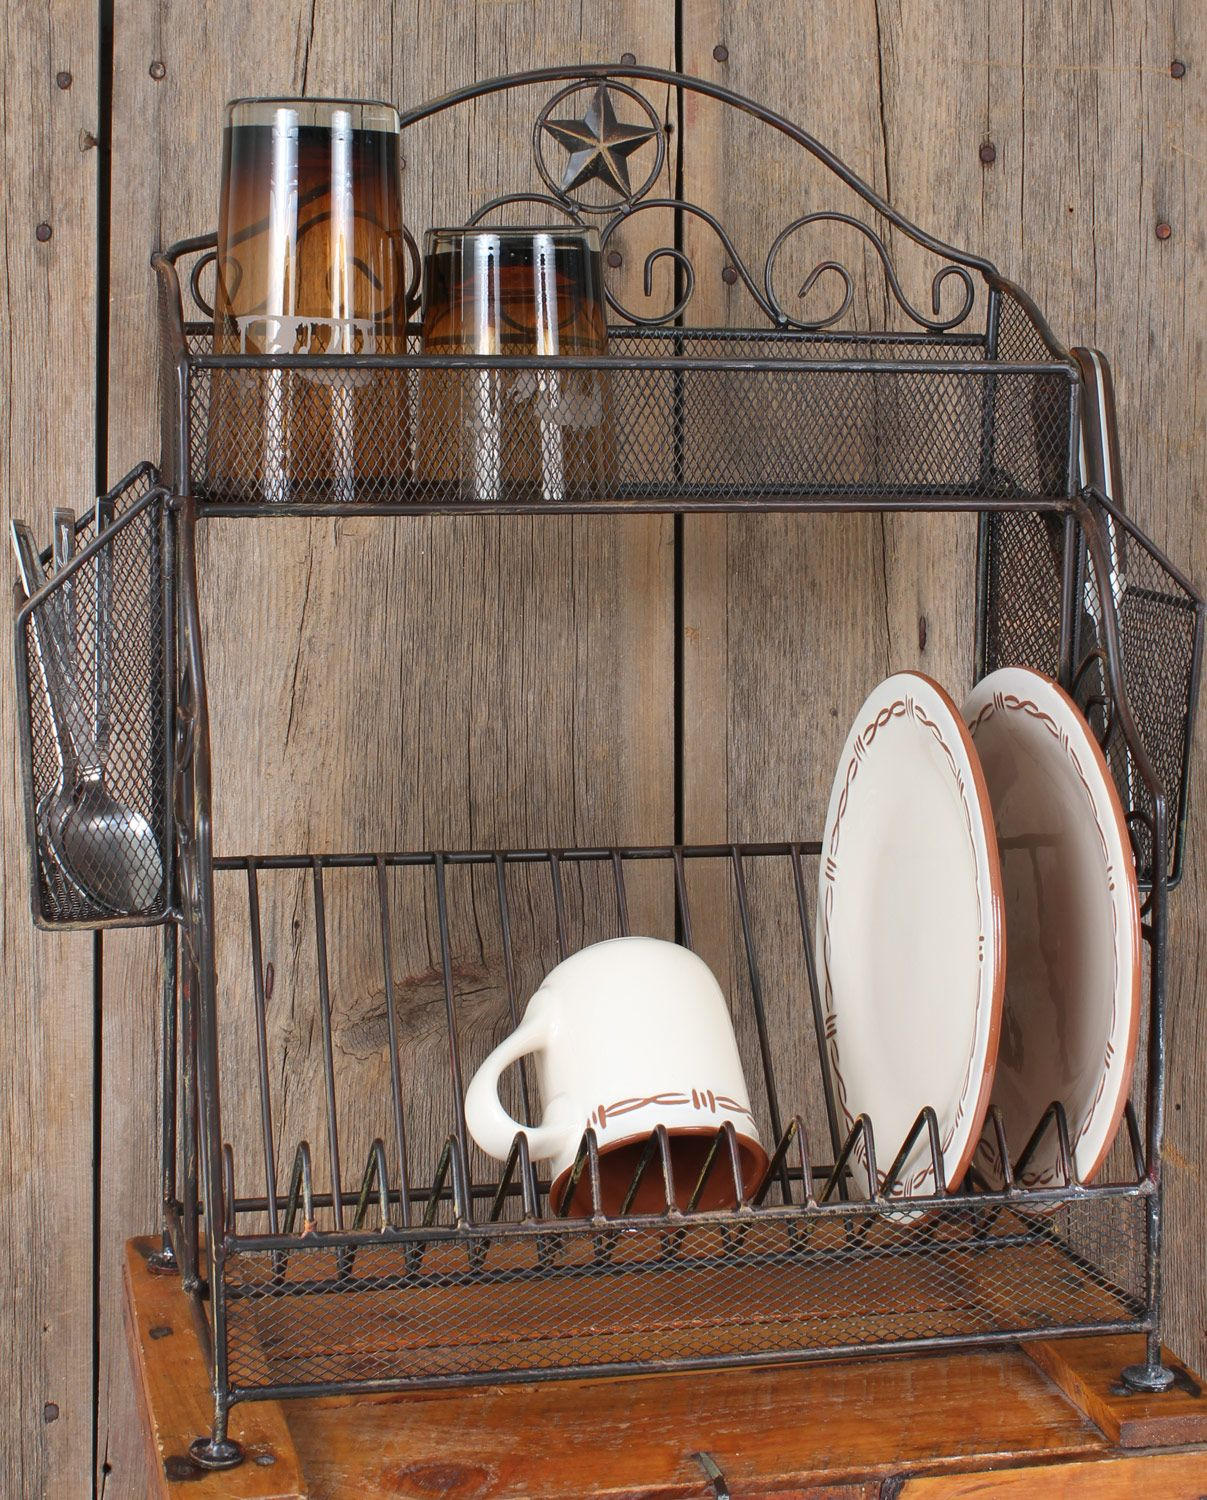 Metal Star Dish Rack Kitchenware Home Decor Fort Western Online